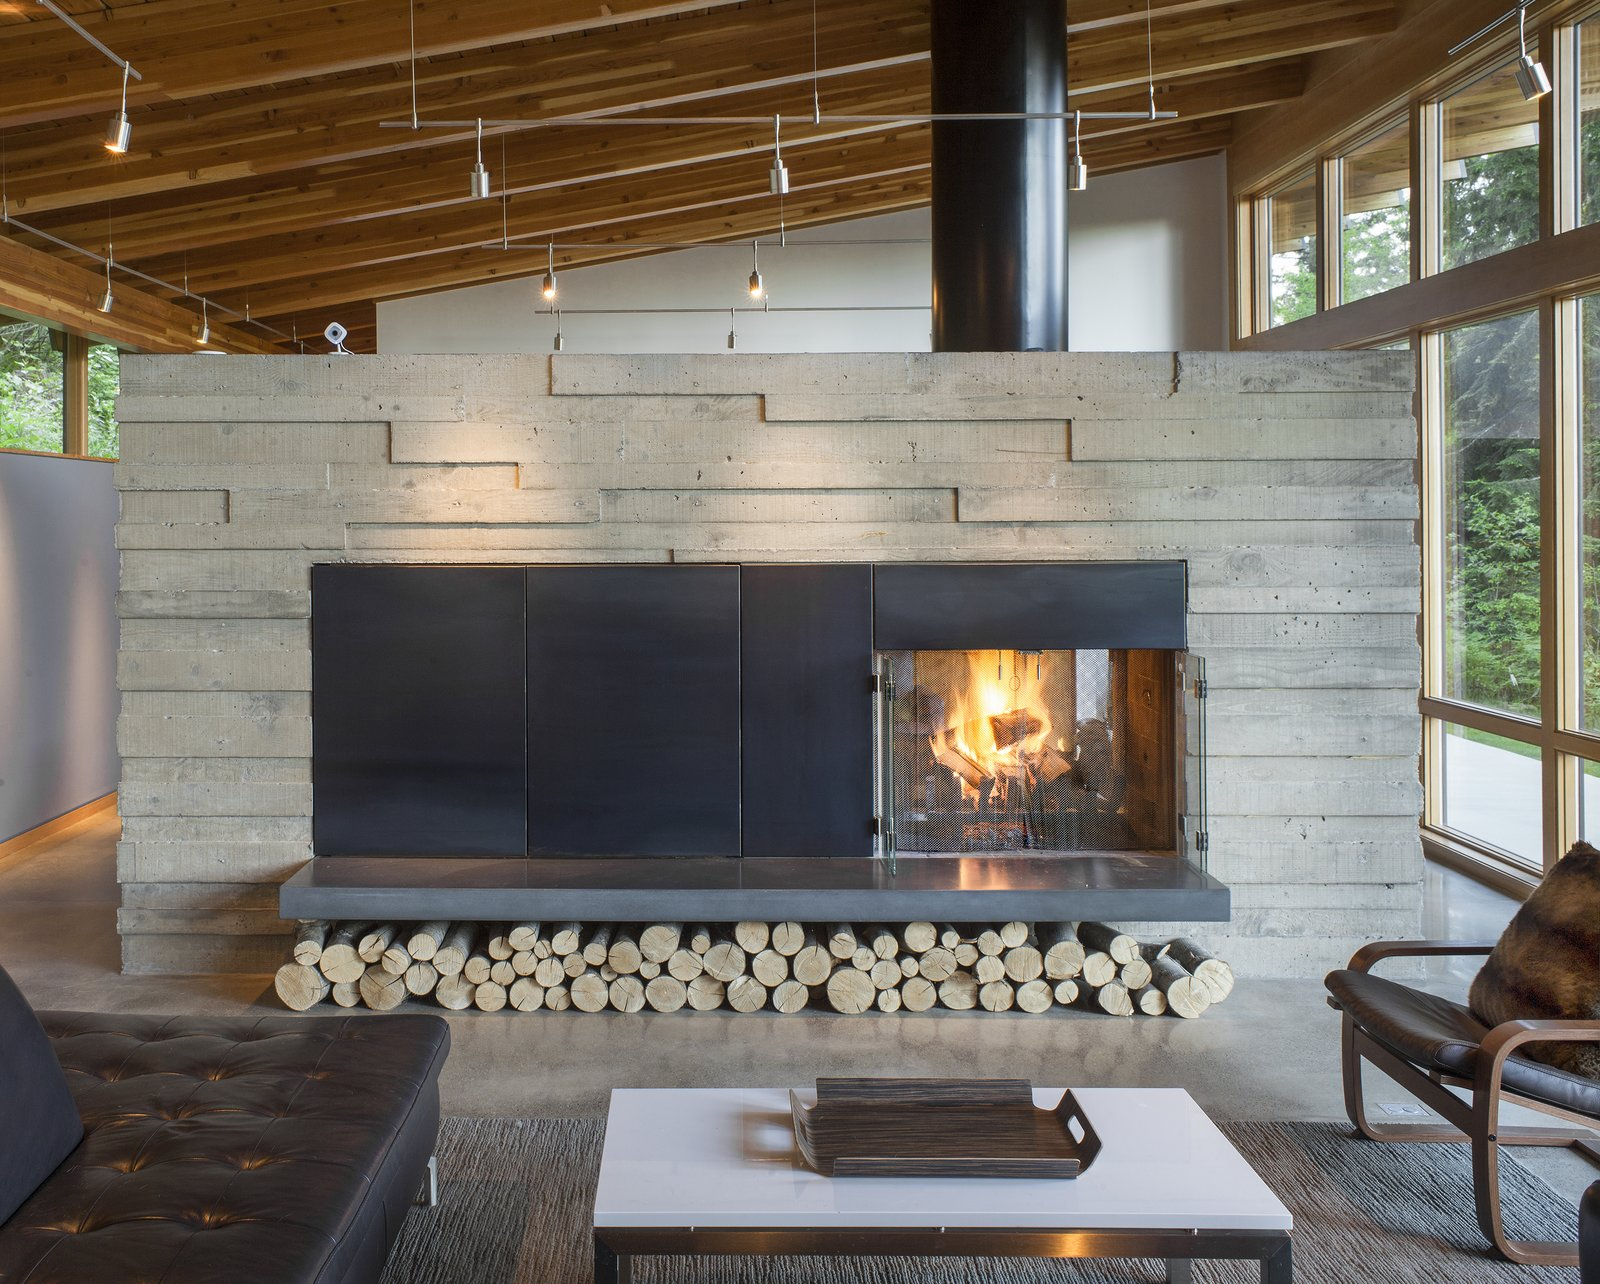 Living, Coffee Tables, Sofa, Concrete, Two-Sided, Rug, Pendant, Chair, and Wood Burning Fire Place  Best Living Two-Sided Concrete Photos from Brightwood Cabin